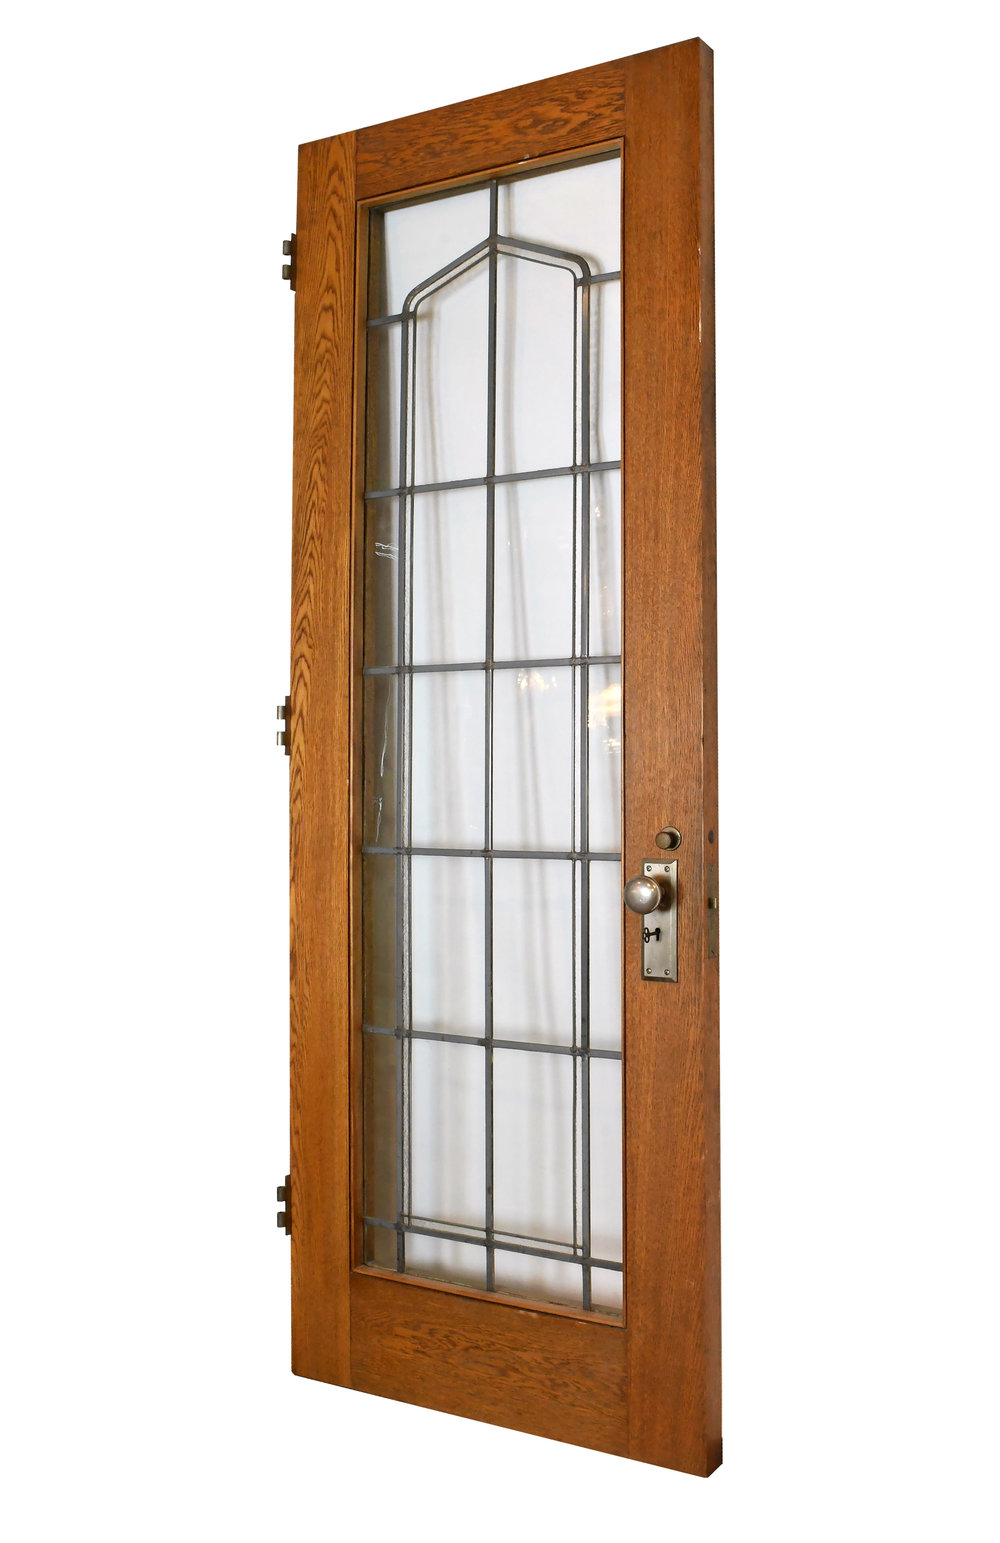 47420-oak-leaded-glass-door-side-view-.jpg